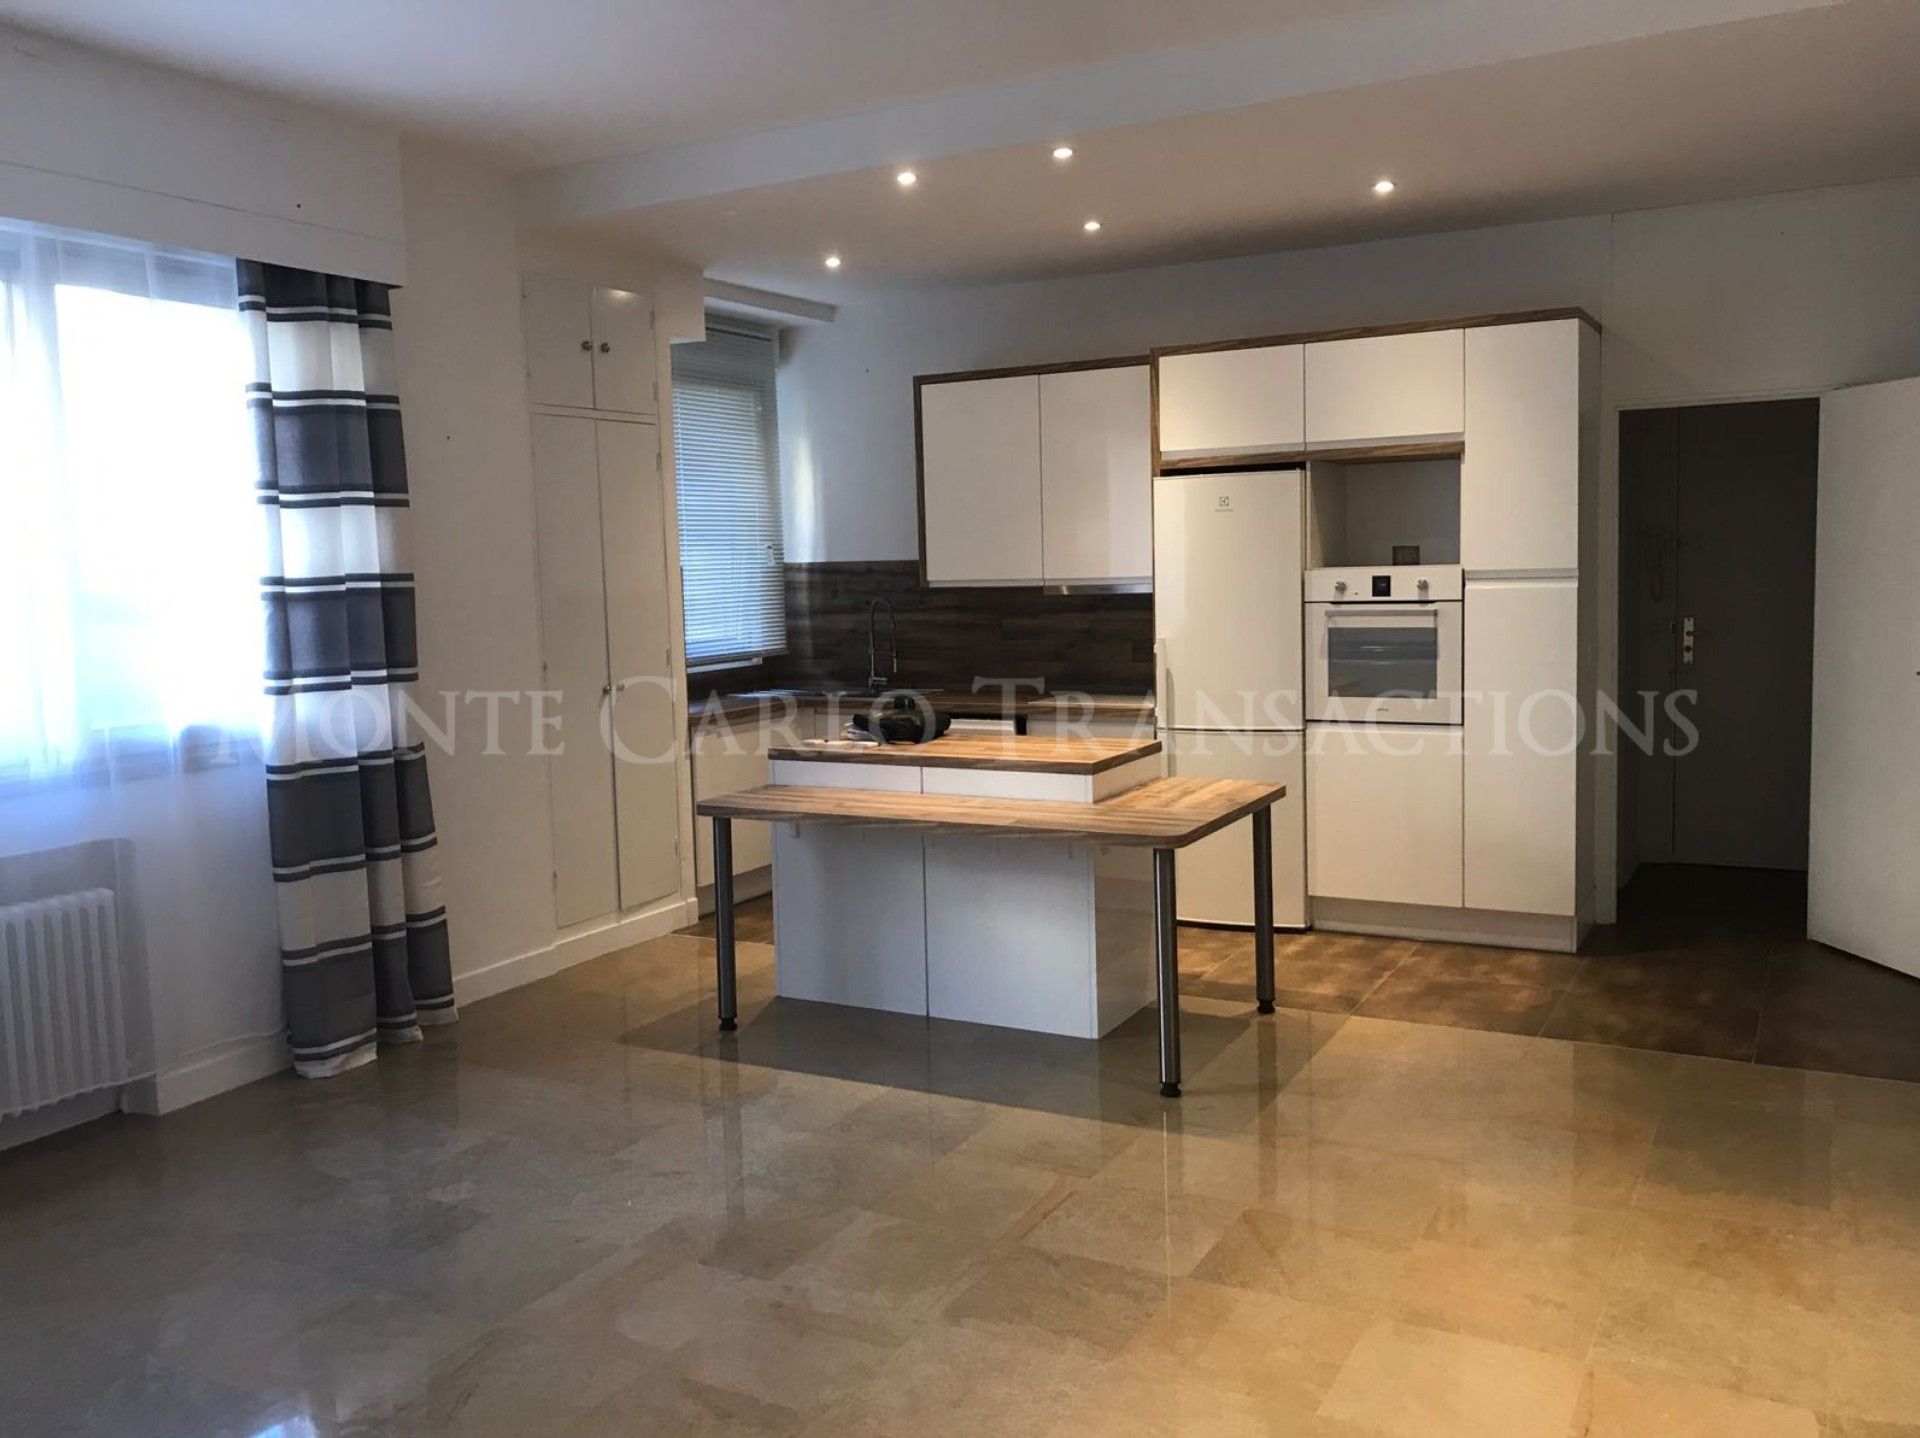 LE ROQUEVILLE-1 Bedroom - USAGE MIXTE